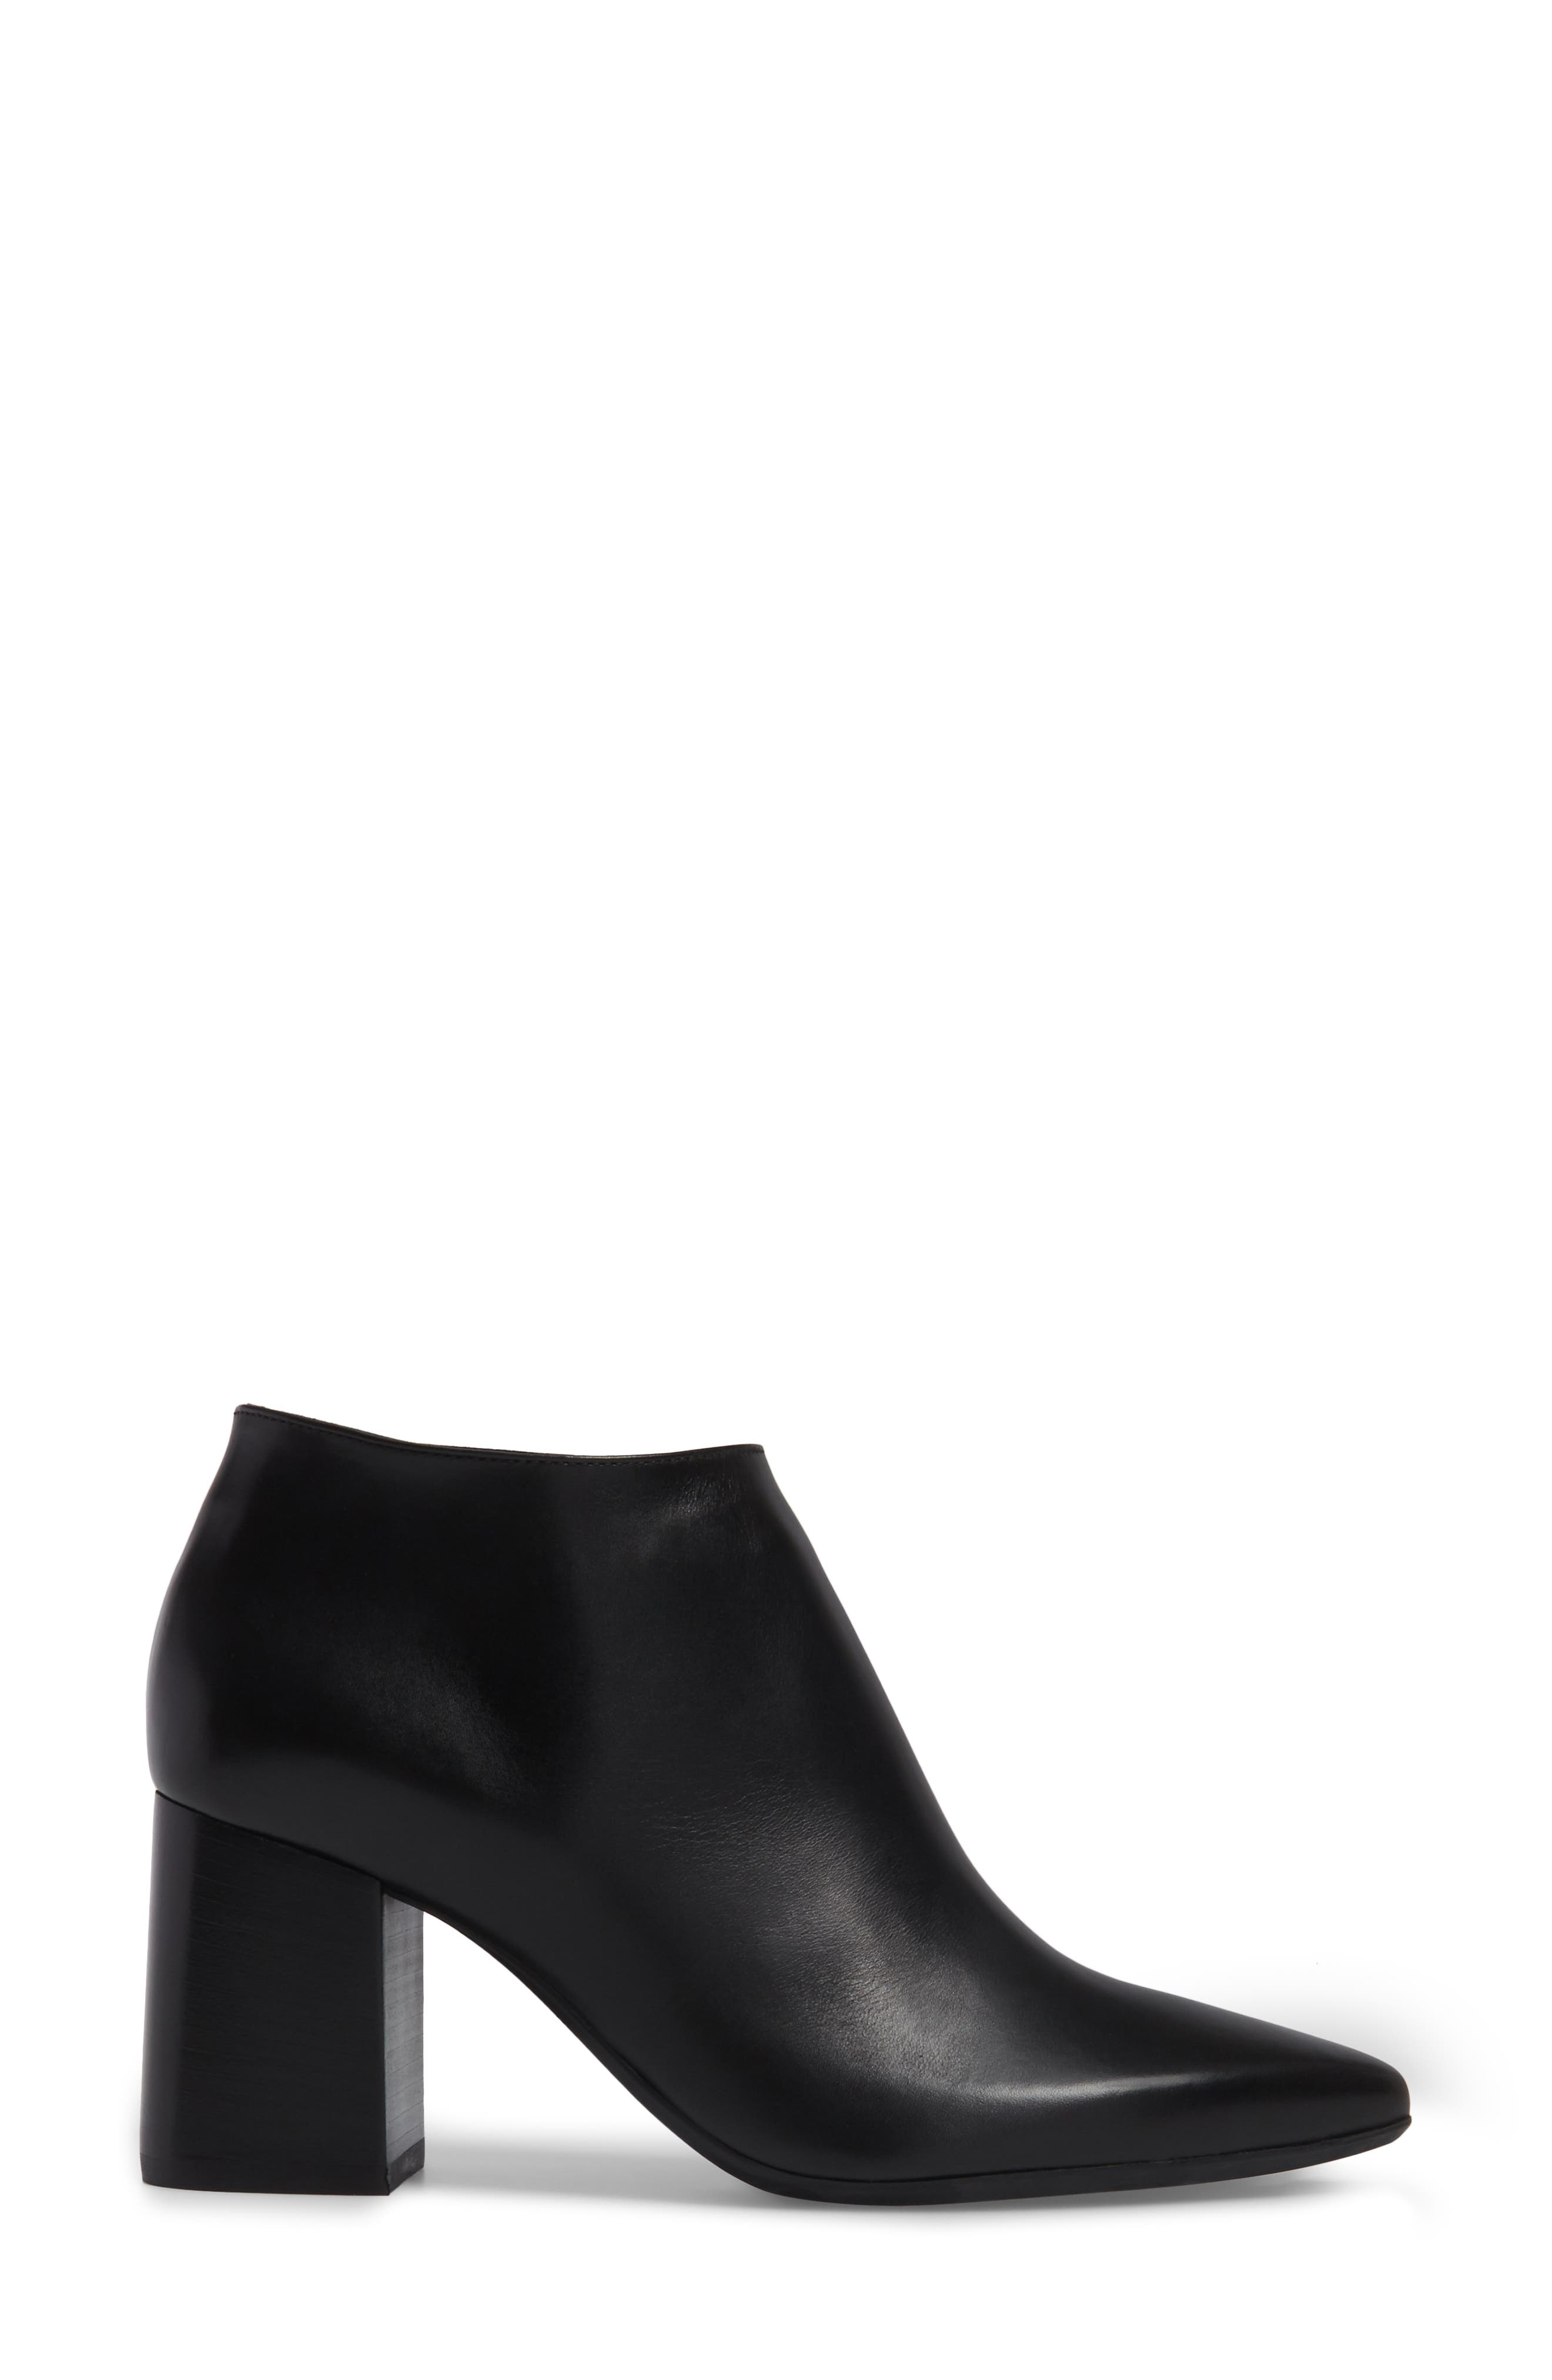 Maria Pointy Toe Bootie,                             Alternate thumbnail 3, color,                             001